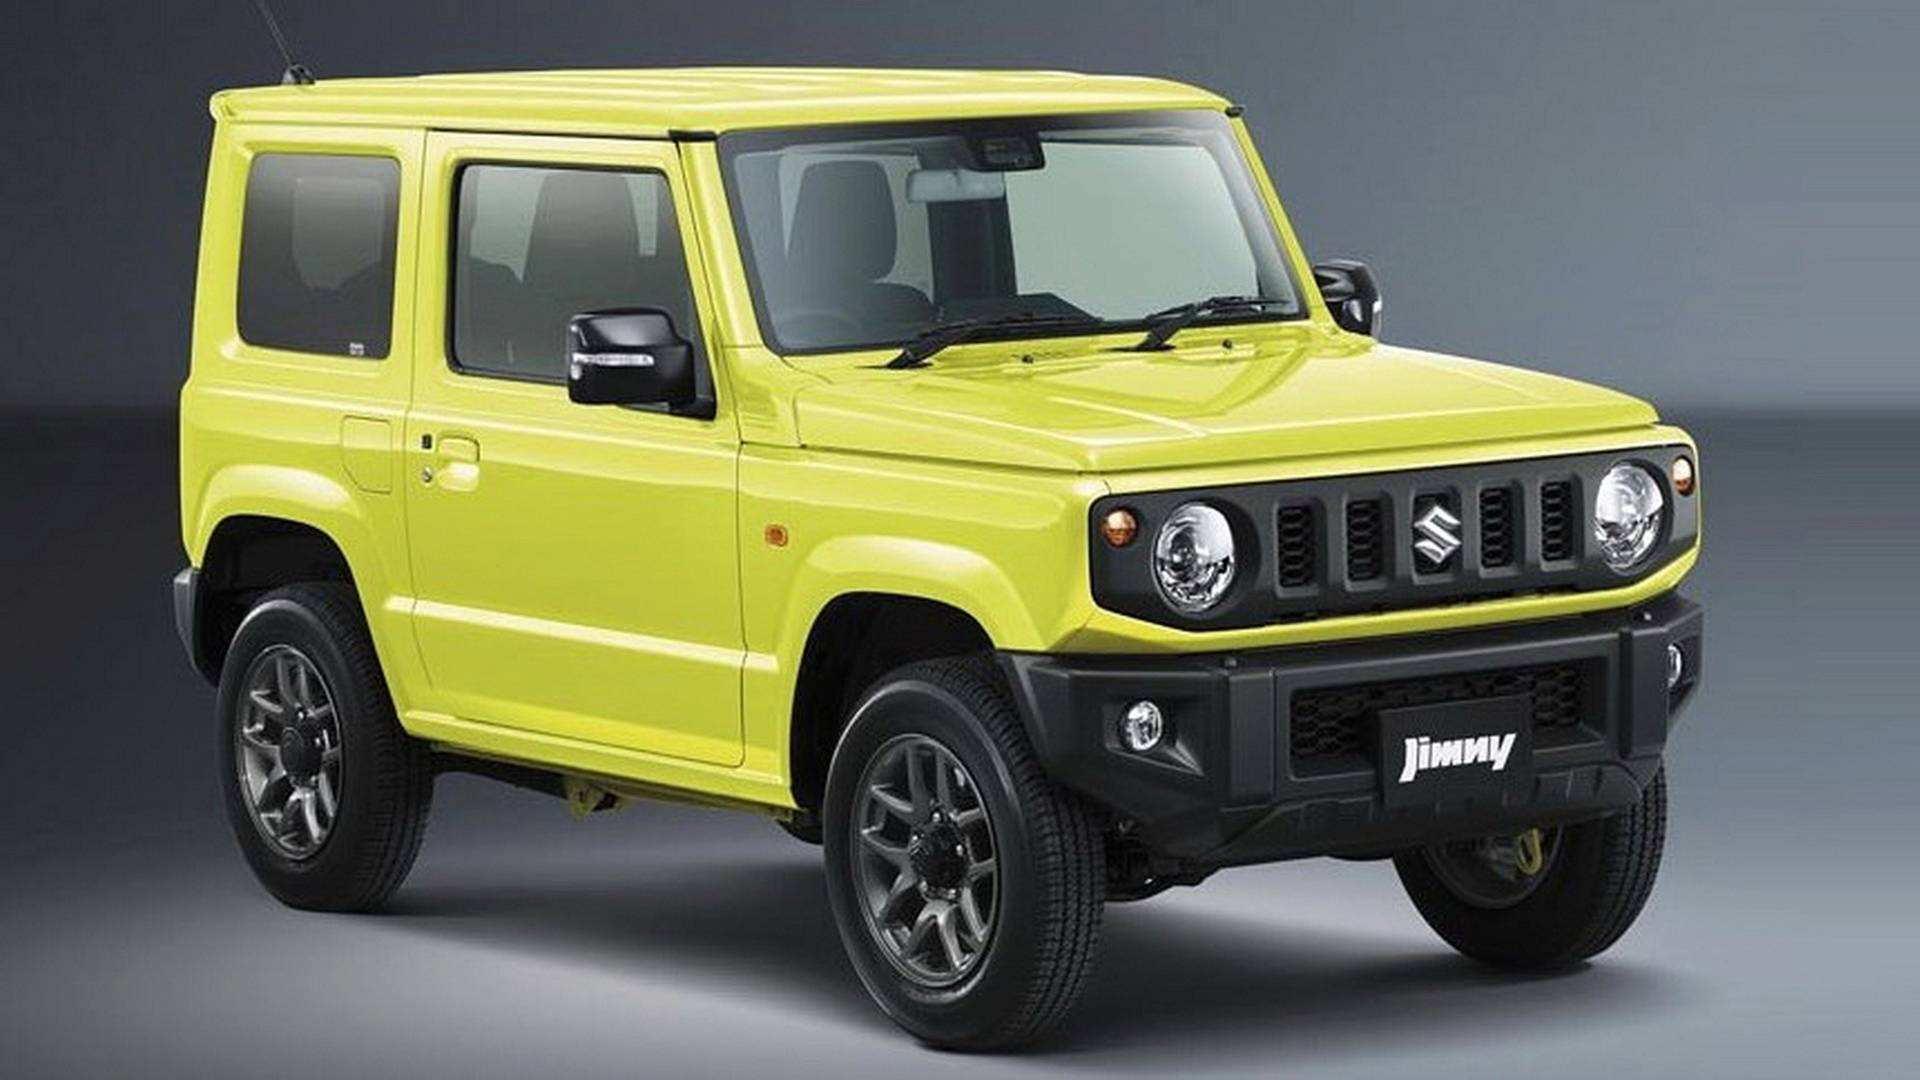 63 New Jimny 2019 Mercedes New Concept Speed Test for Jimny 2019 Mercedes New Concept